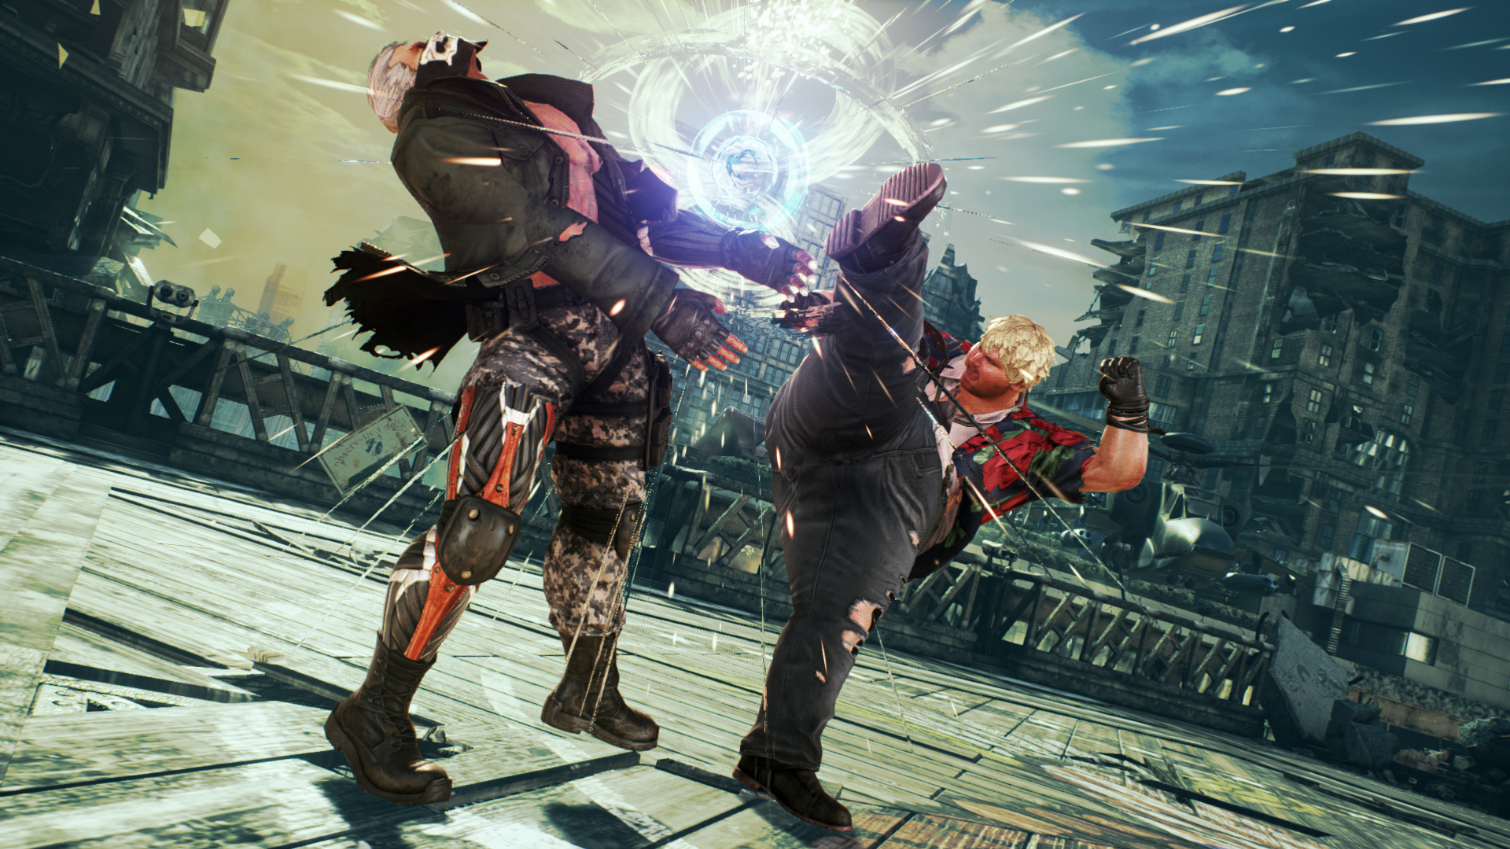 Tekken 7: PS4, Xbox One or PC? | Tom's Guide